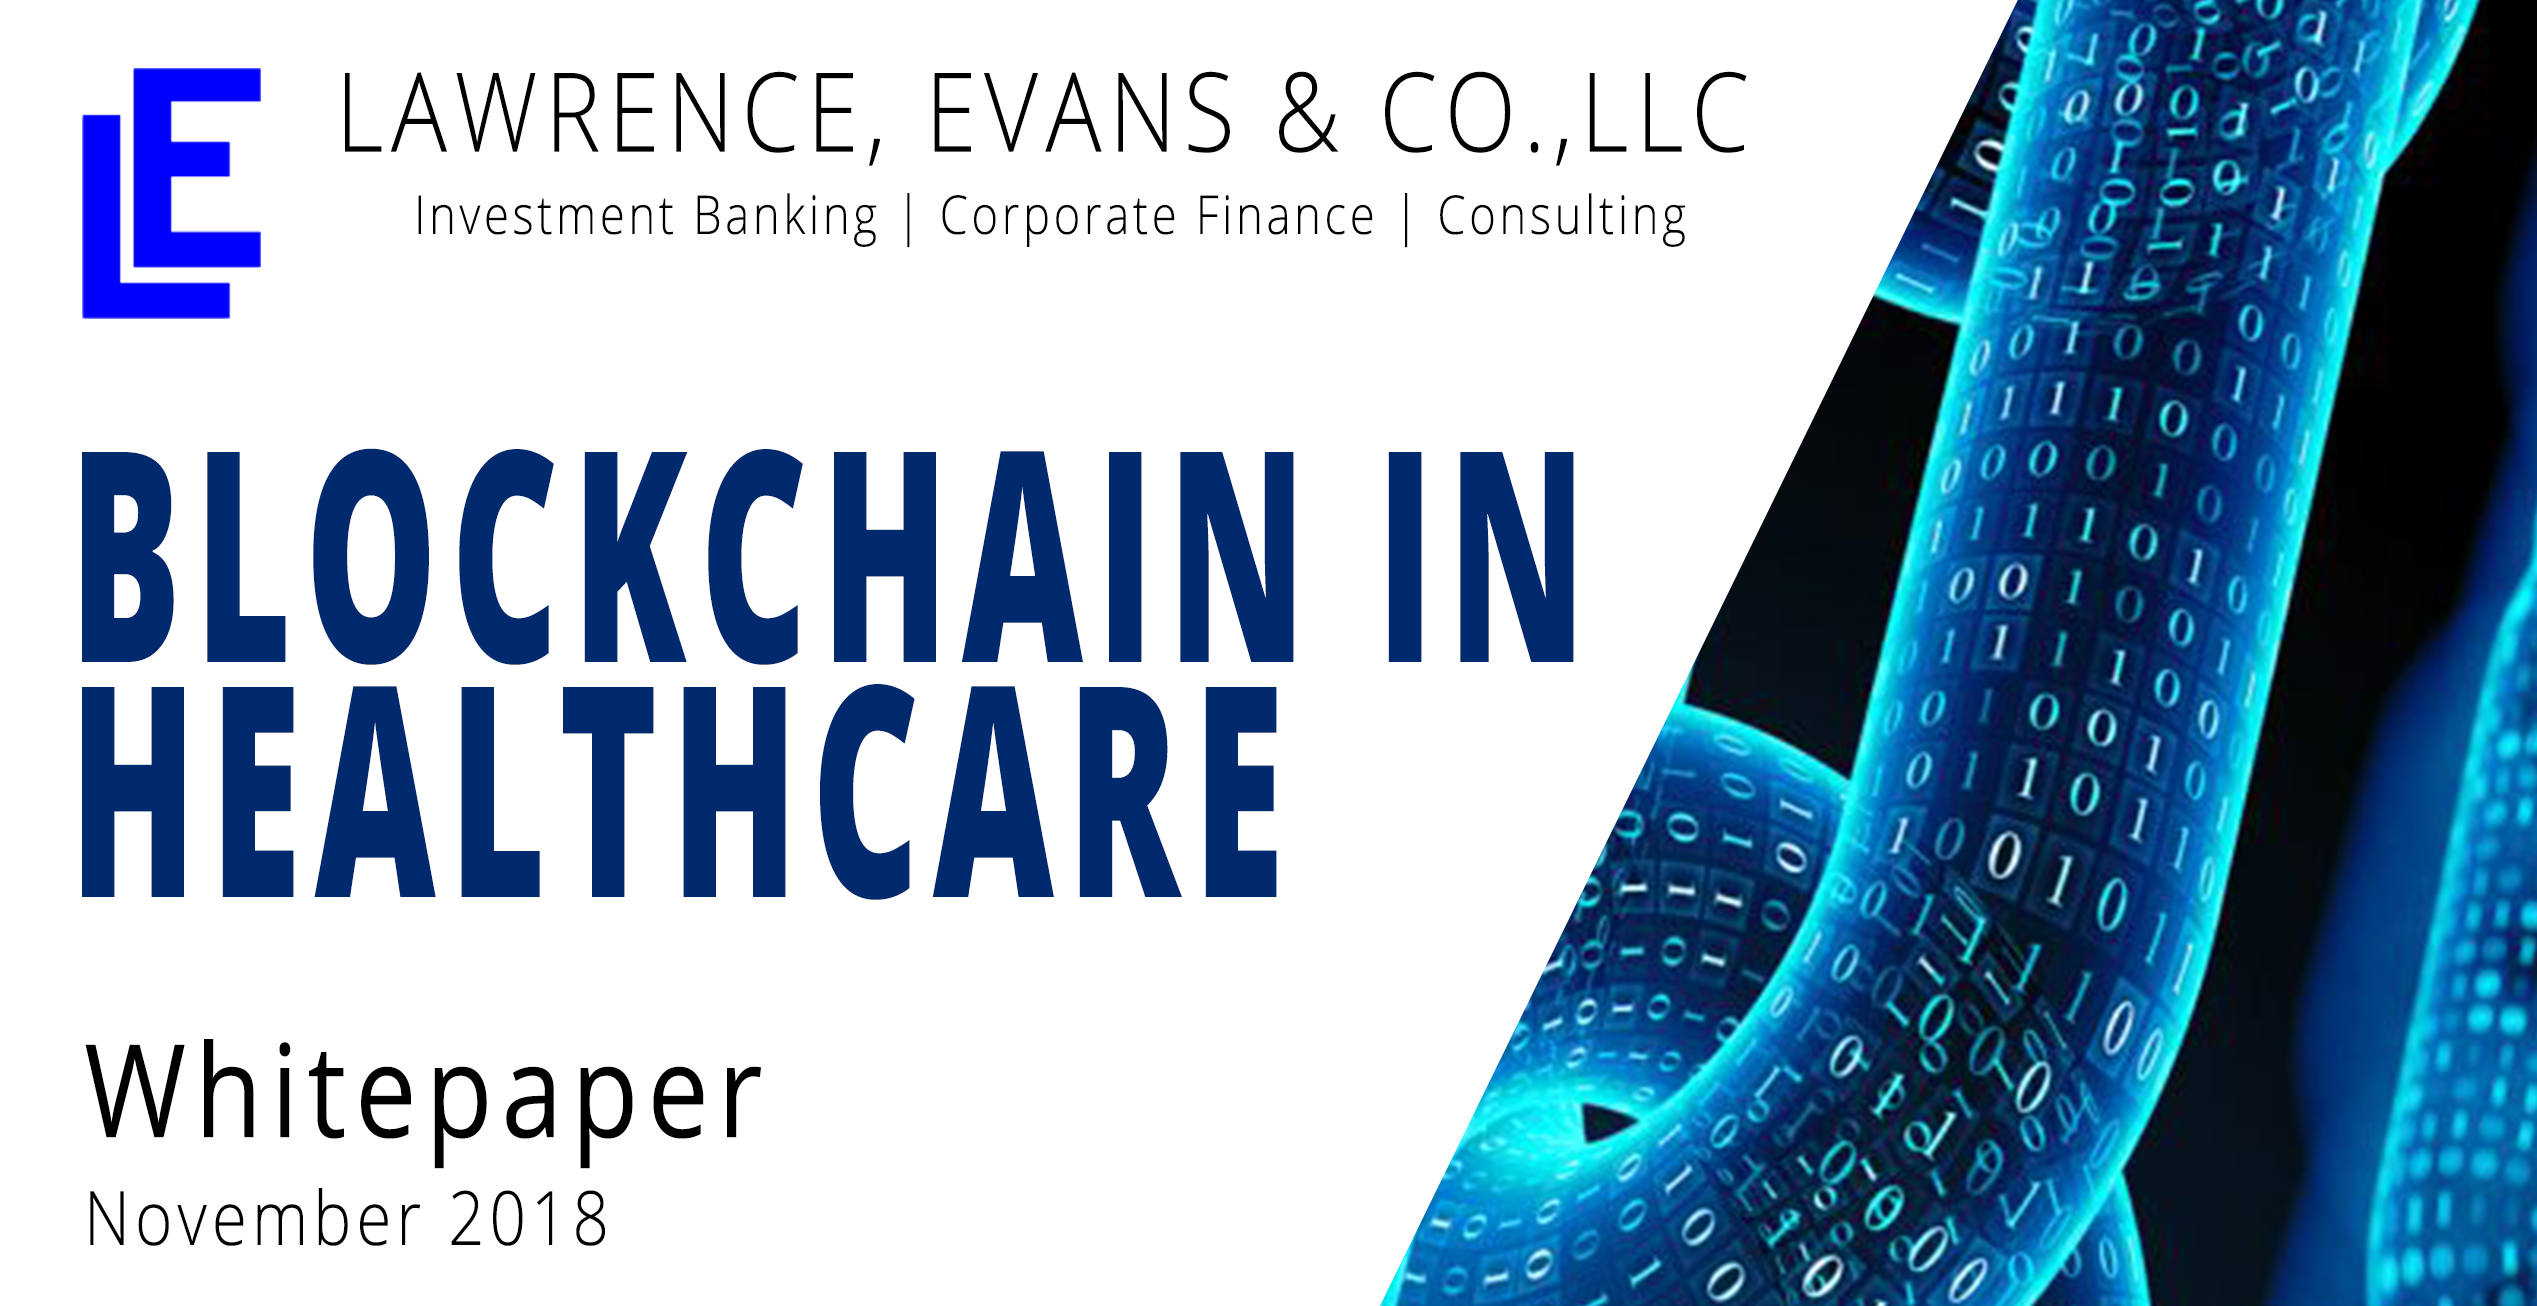 Blockchain in Healthcare White Paper - Lawrence, Evans & Co